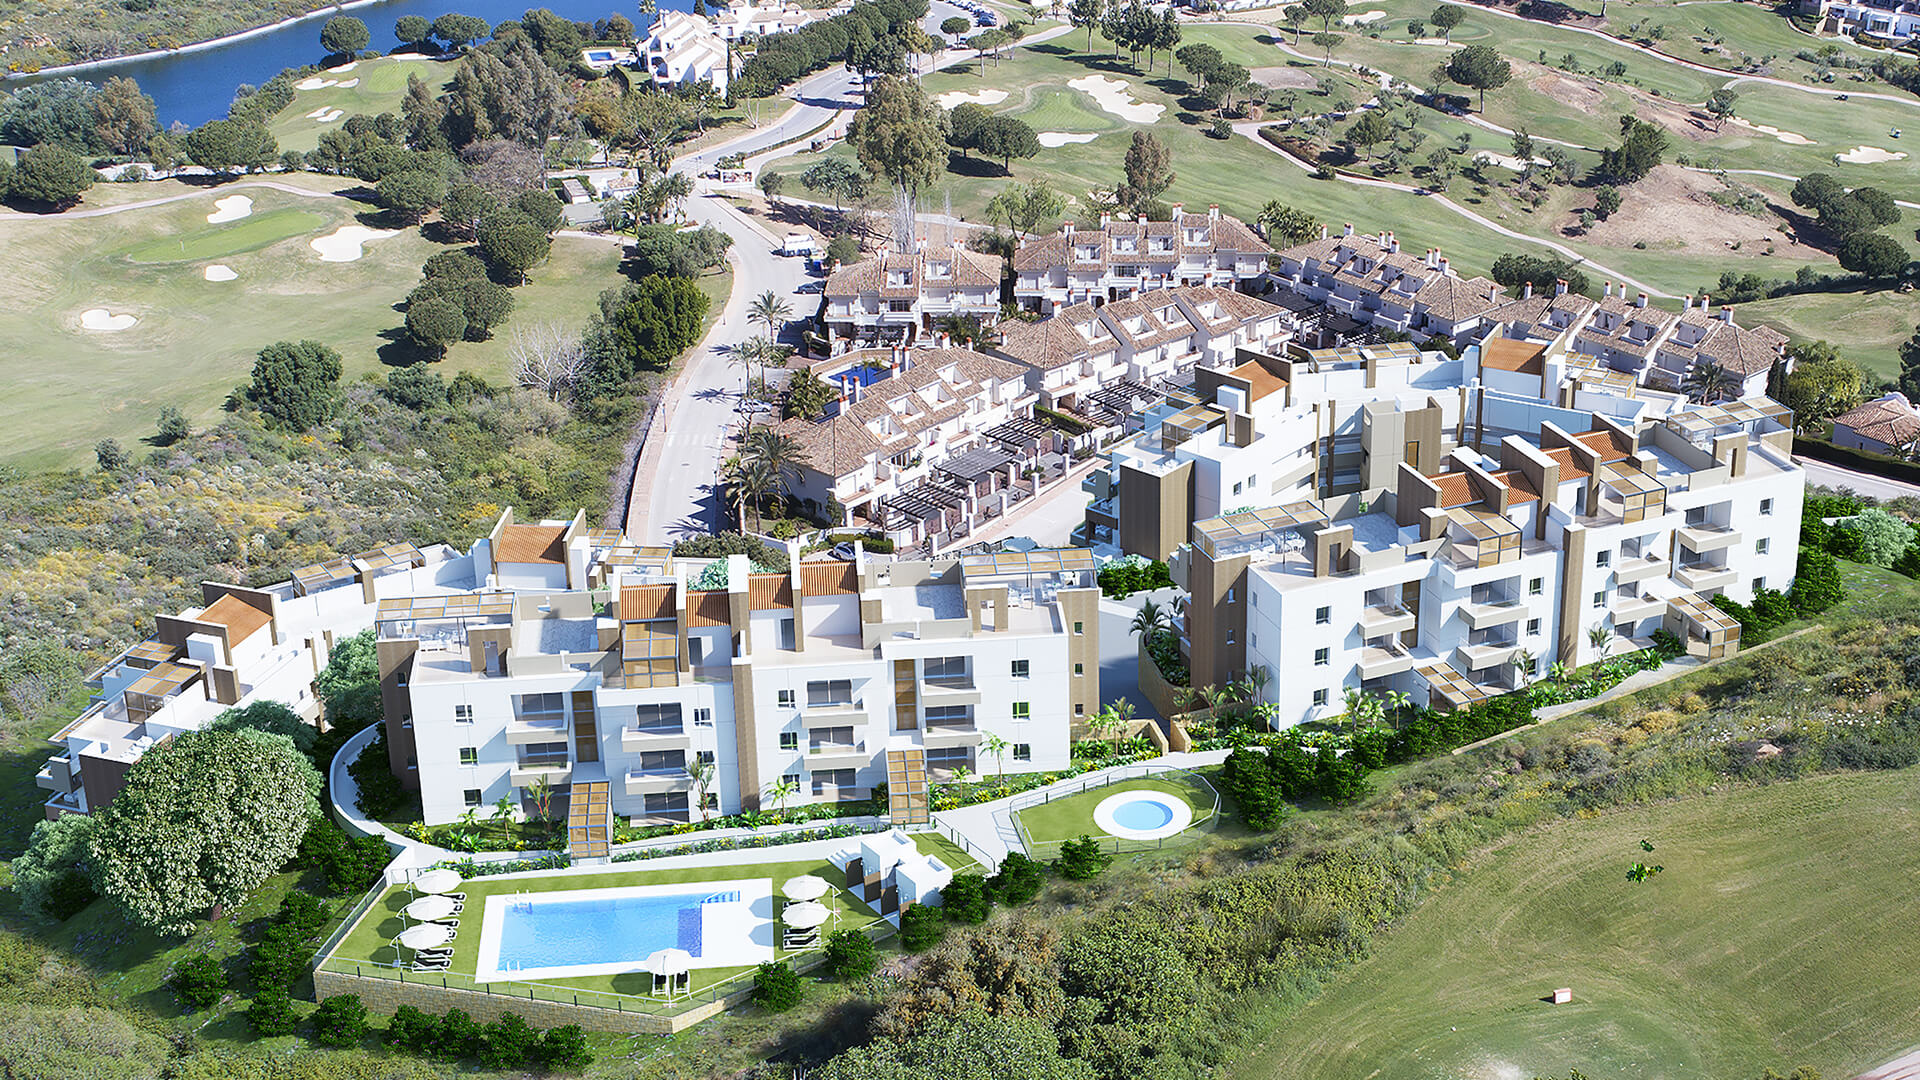 La Cala Views - La Cala de Mijas